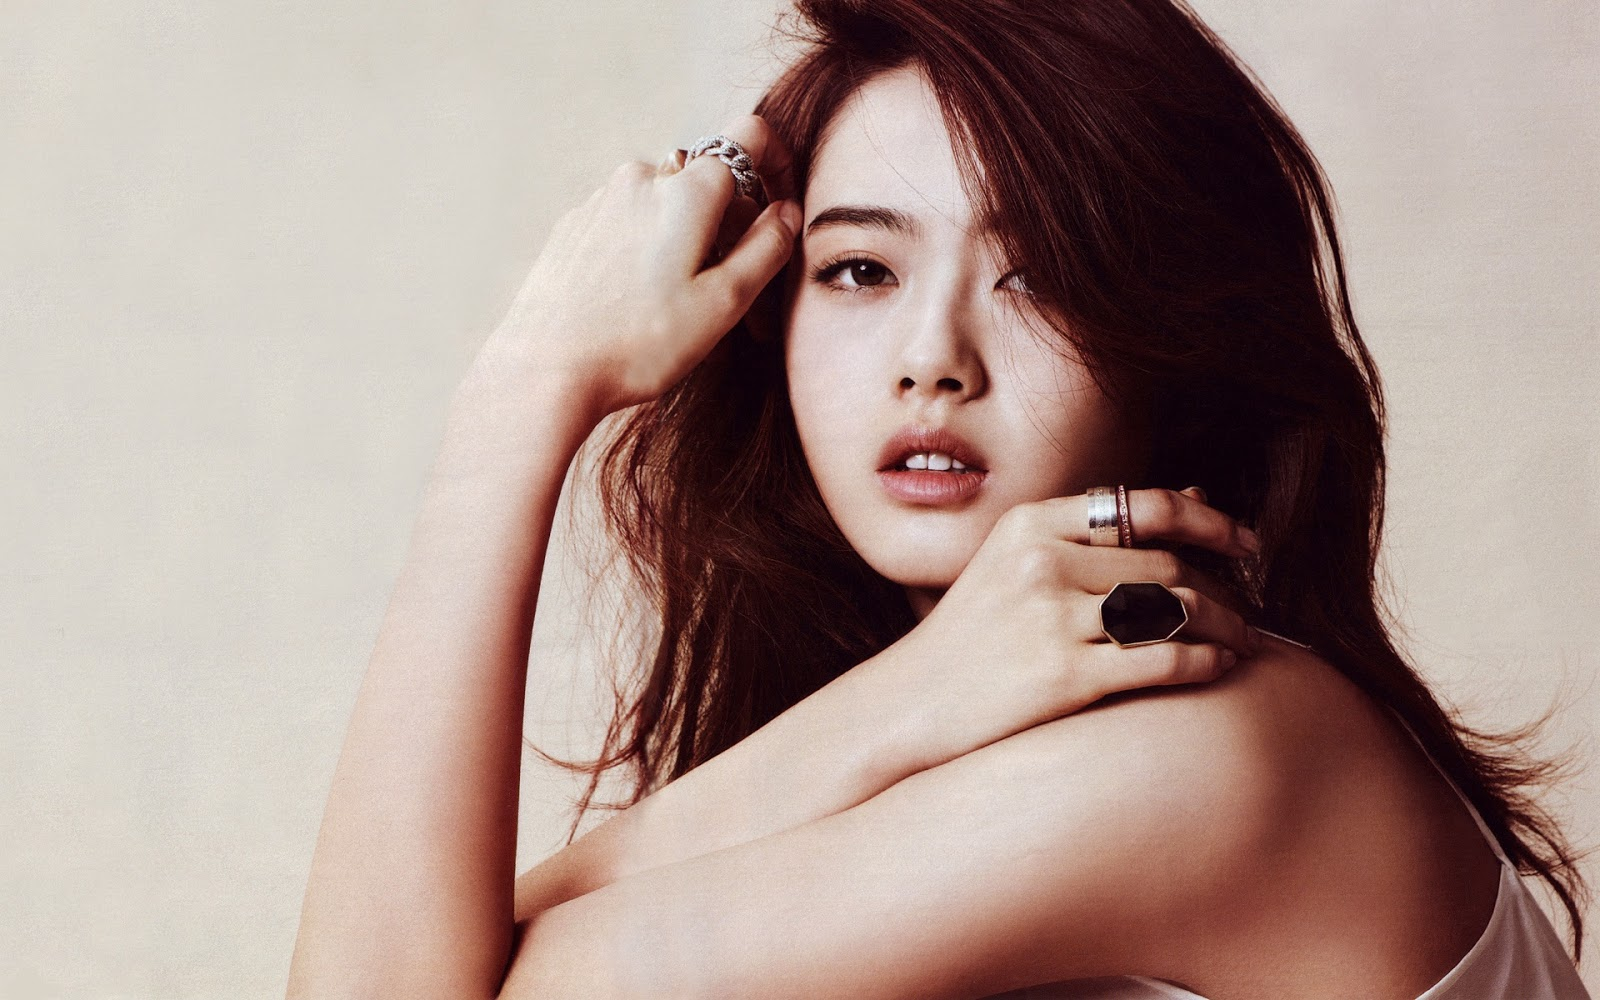 Go ara wallpaper hd hot sexy beauty club for Wallpaper to go